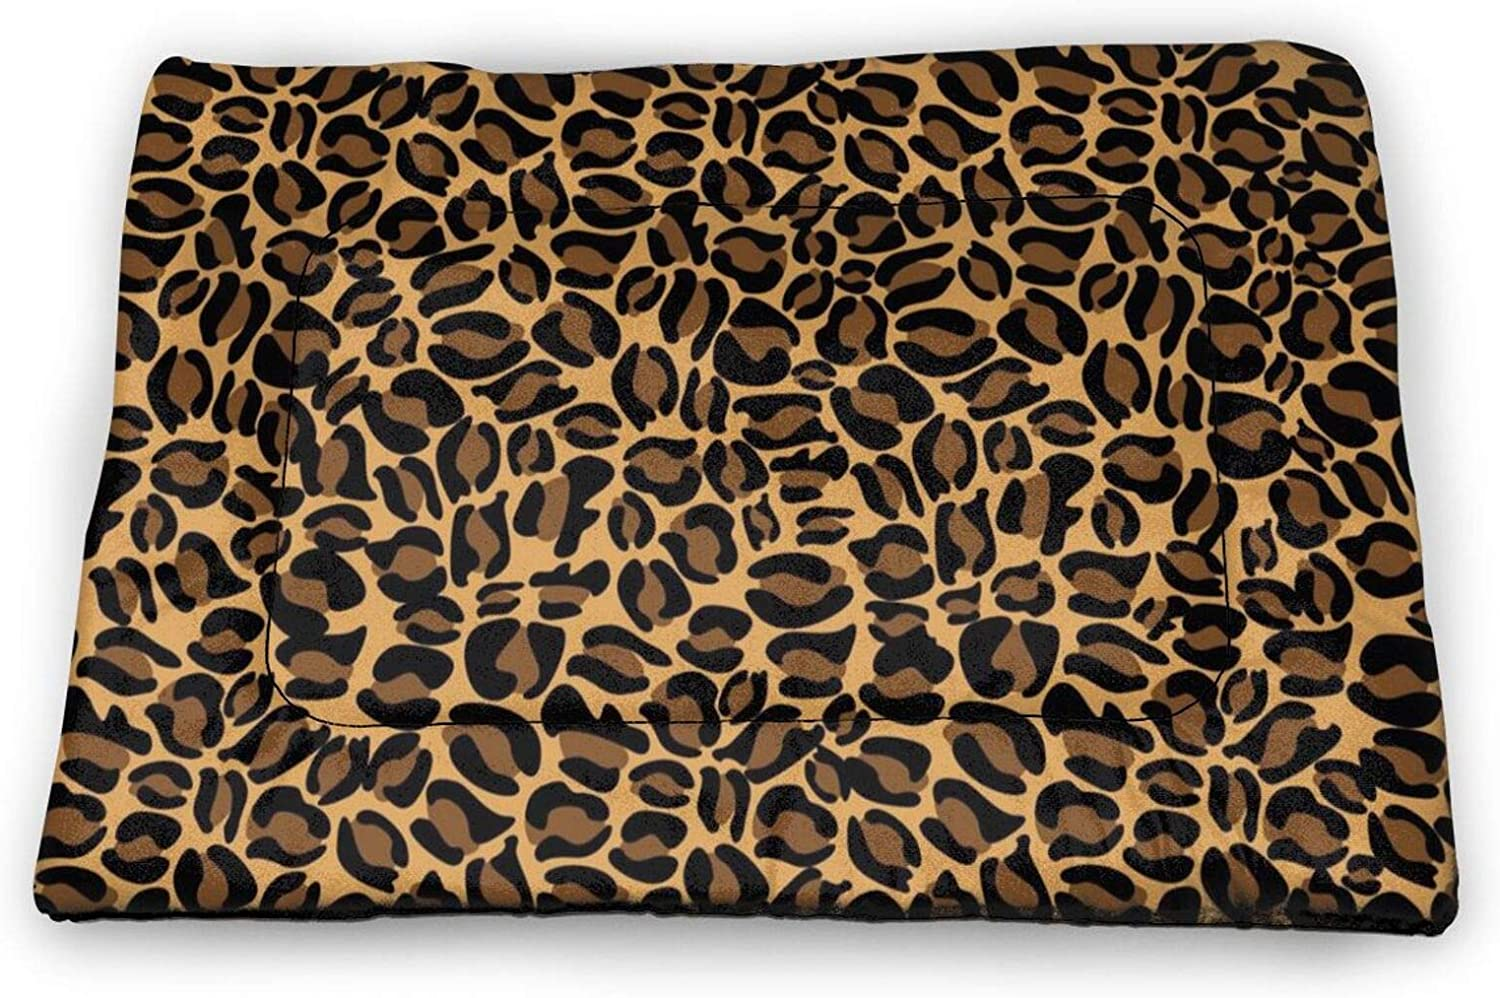 Neddelo Cheetah Print Pet Mat£¬Washable Pads for Dogs,Reusable Puppy Training Pads